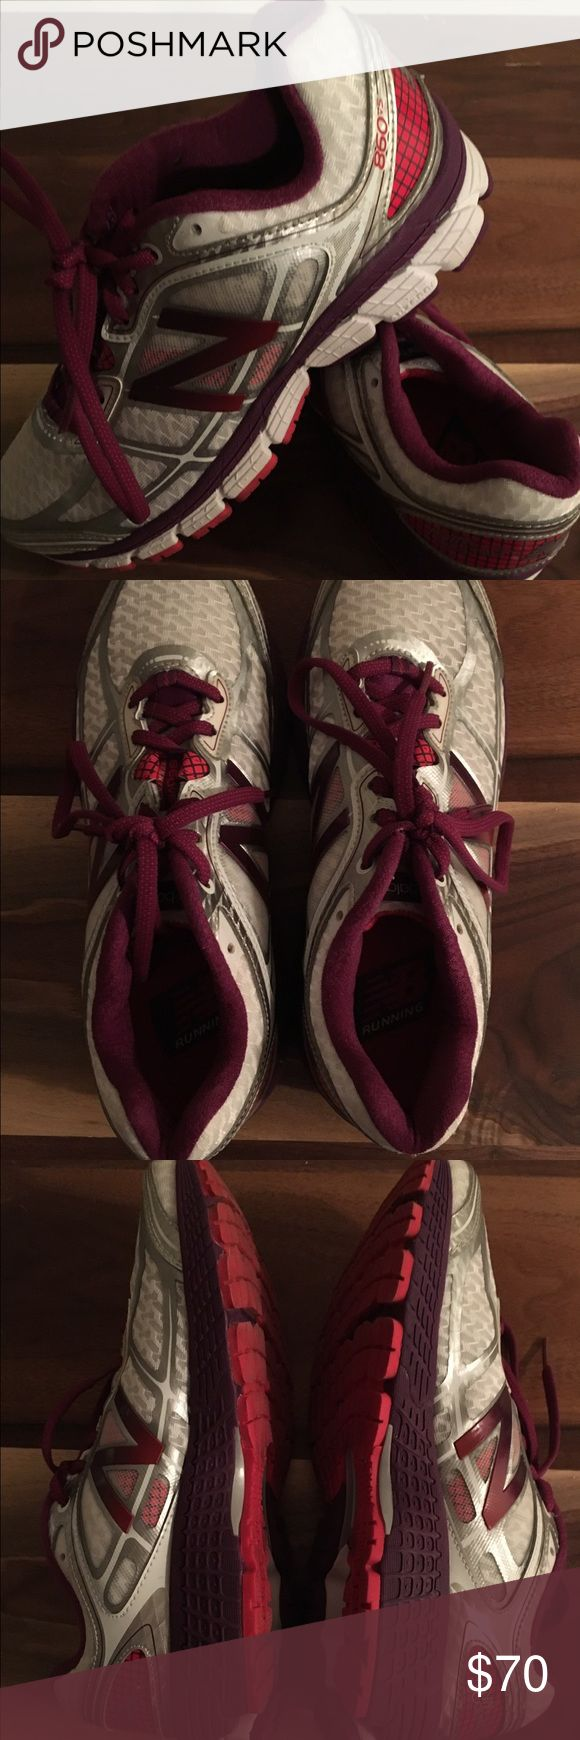 New Balance 860v5 New Balance women's 860v5. Only worn once. Really great for long distance running! New Balance Shoes Athletic Shoes